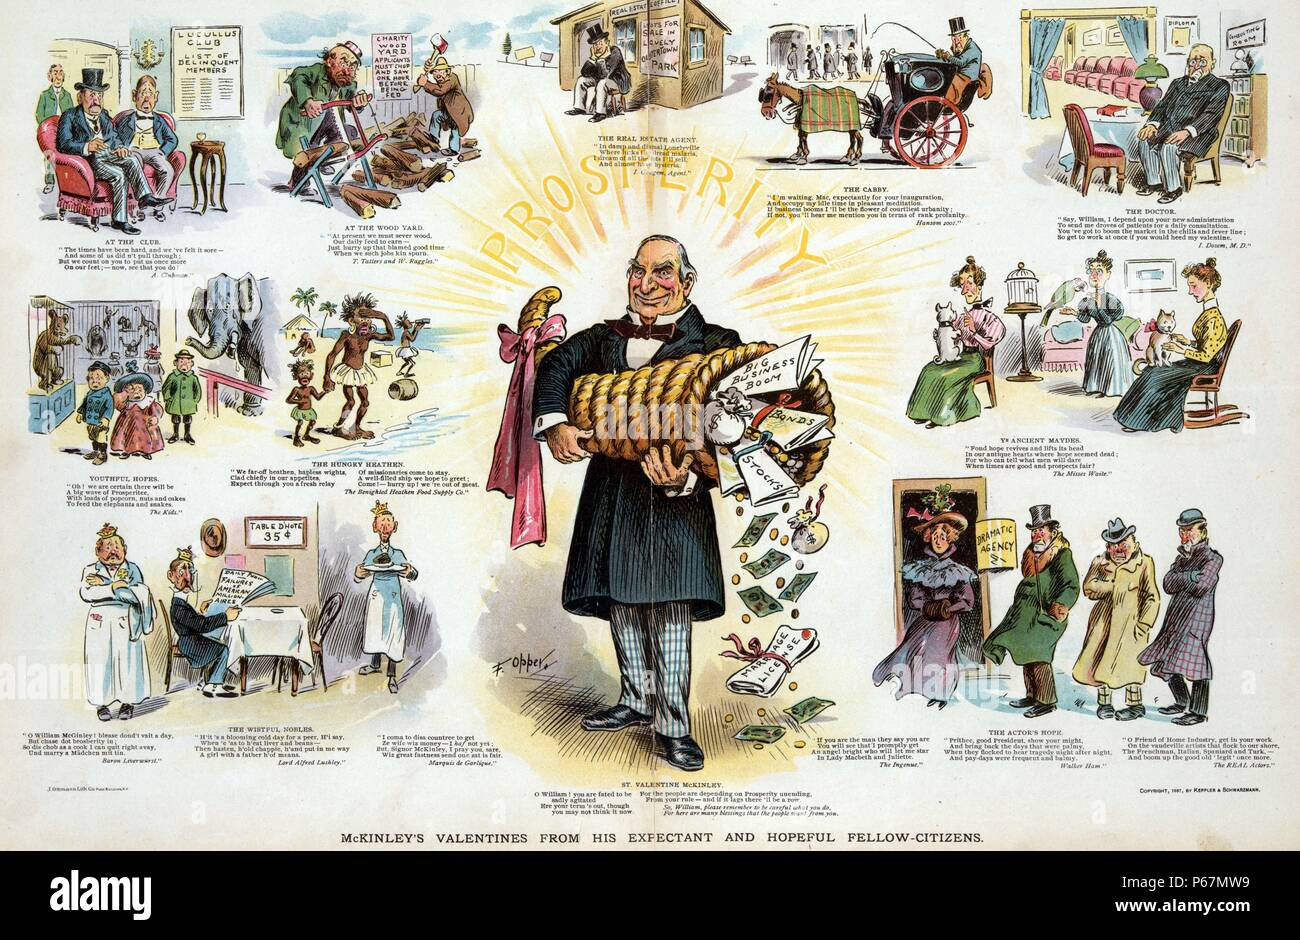 McKinley's valentines from his expectant and hopeful fellow-citizens' President McKinley standing at centre holding a large cornucopia and emitting rays labelled 'Prosperity', while around him are vignettes showing people from all walks of life, doctors, cabbies, club men, real estate agents, actors, nobility seeking rich American wives, tramps, children, and old maids, even 'The Hungry Heathen', all with valentine wishes for McKinley and the hope of prosperity for themselves. - Stock Image